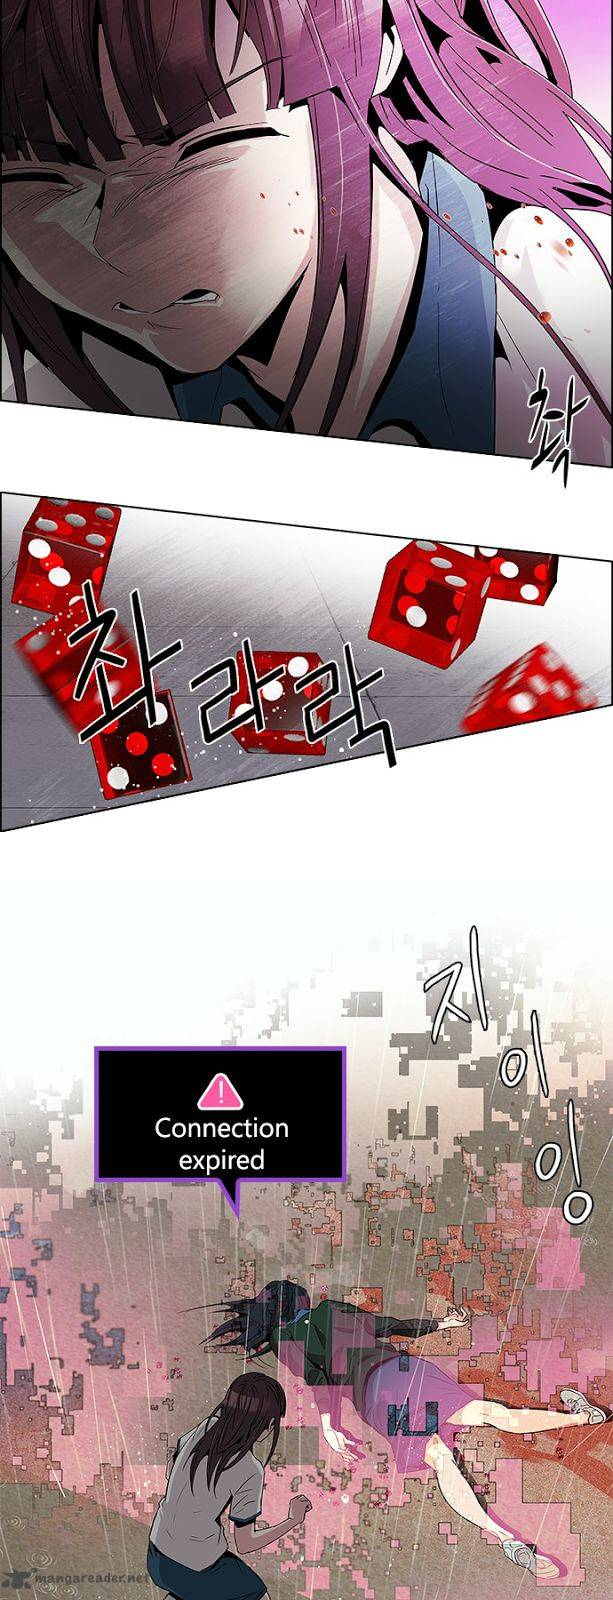 dice_the_cube_that_changes_everything_79_34